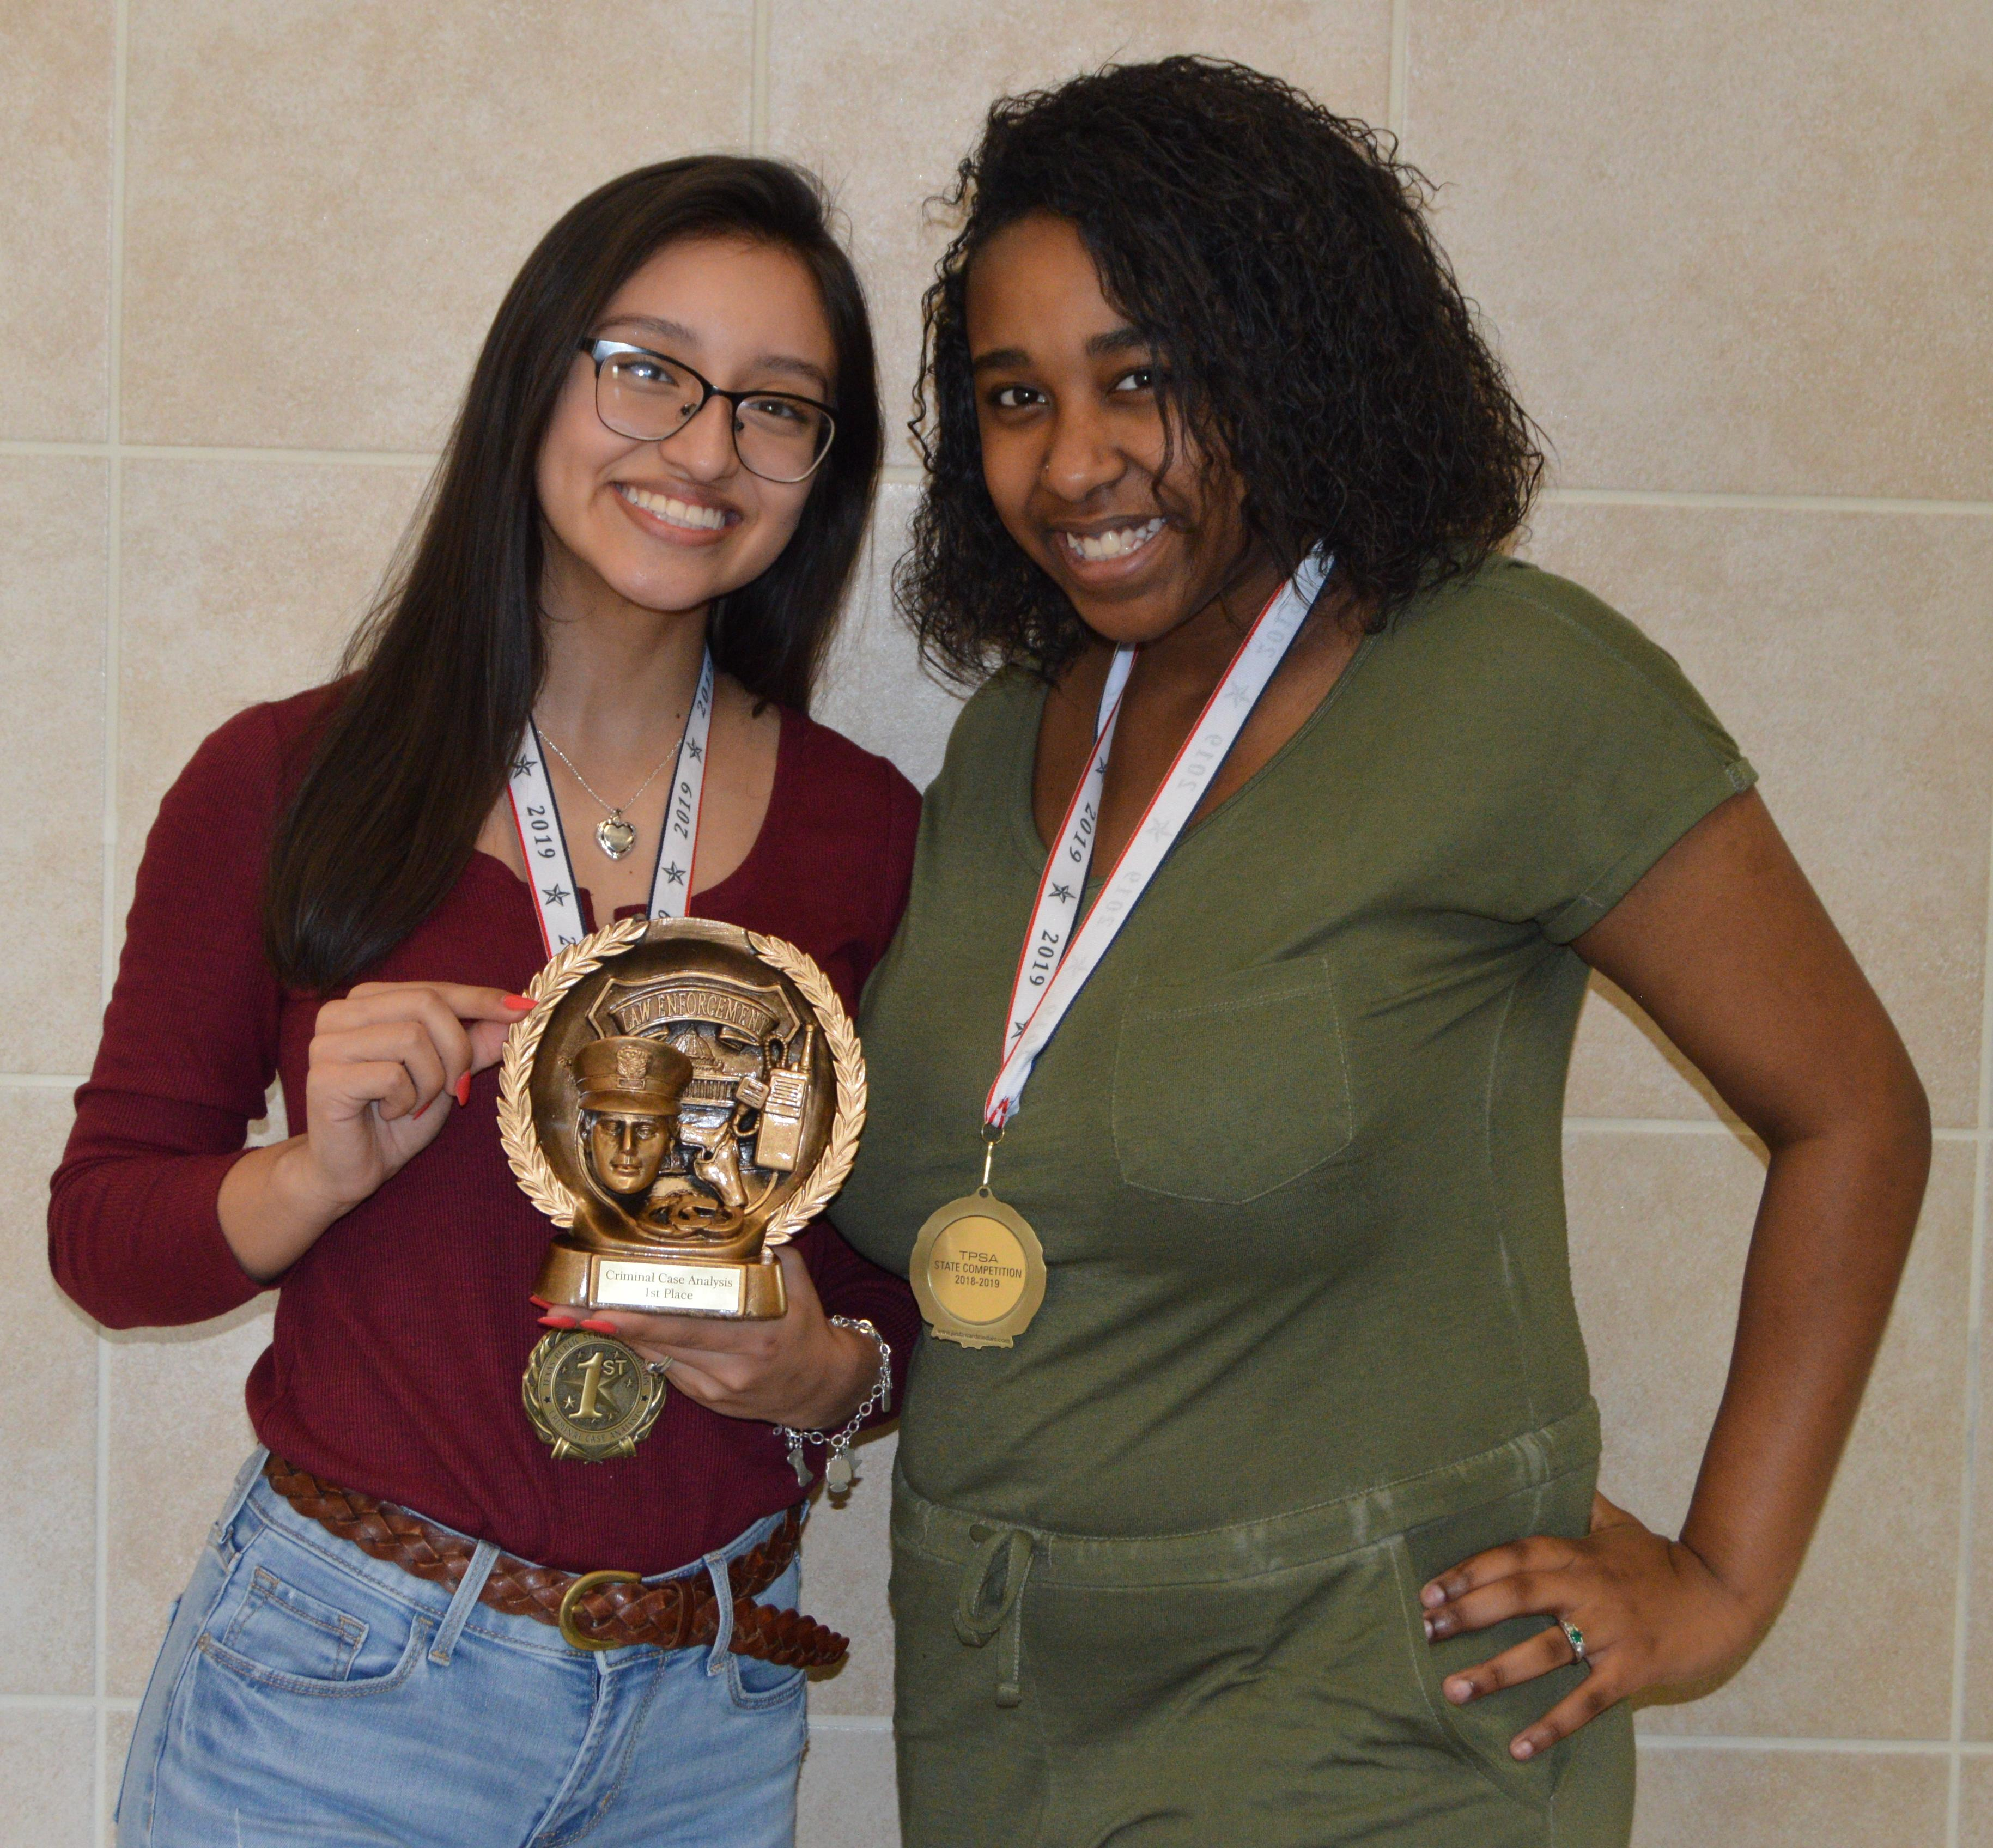 Brewer High School Law Enforcement Club members Alondra Rojas and Zauria Thomas won first place in Criminal Case Analysis and third in 911 Call respectively during the Texas Public Safety Association State Competition.